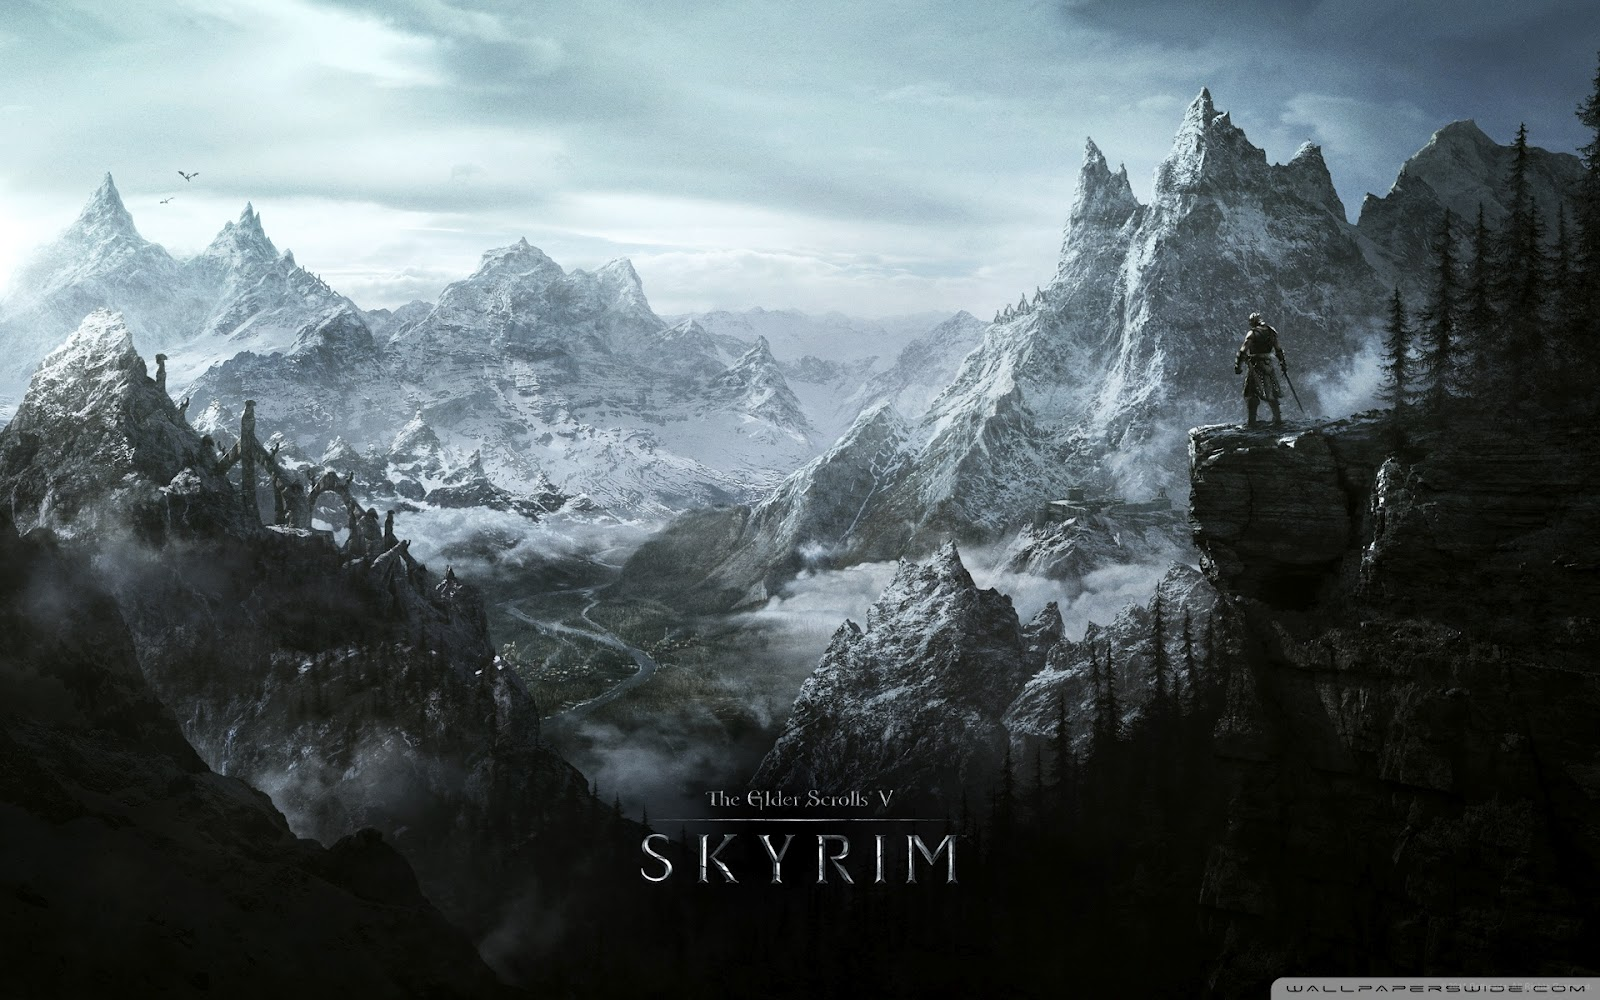 The Elder Scrolls Wallpaper: Freaking Spot: Elder Scrolls V Skyrim Full HD 1080p Wallpapers